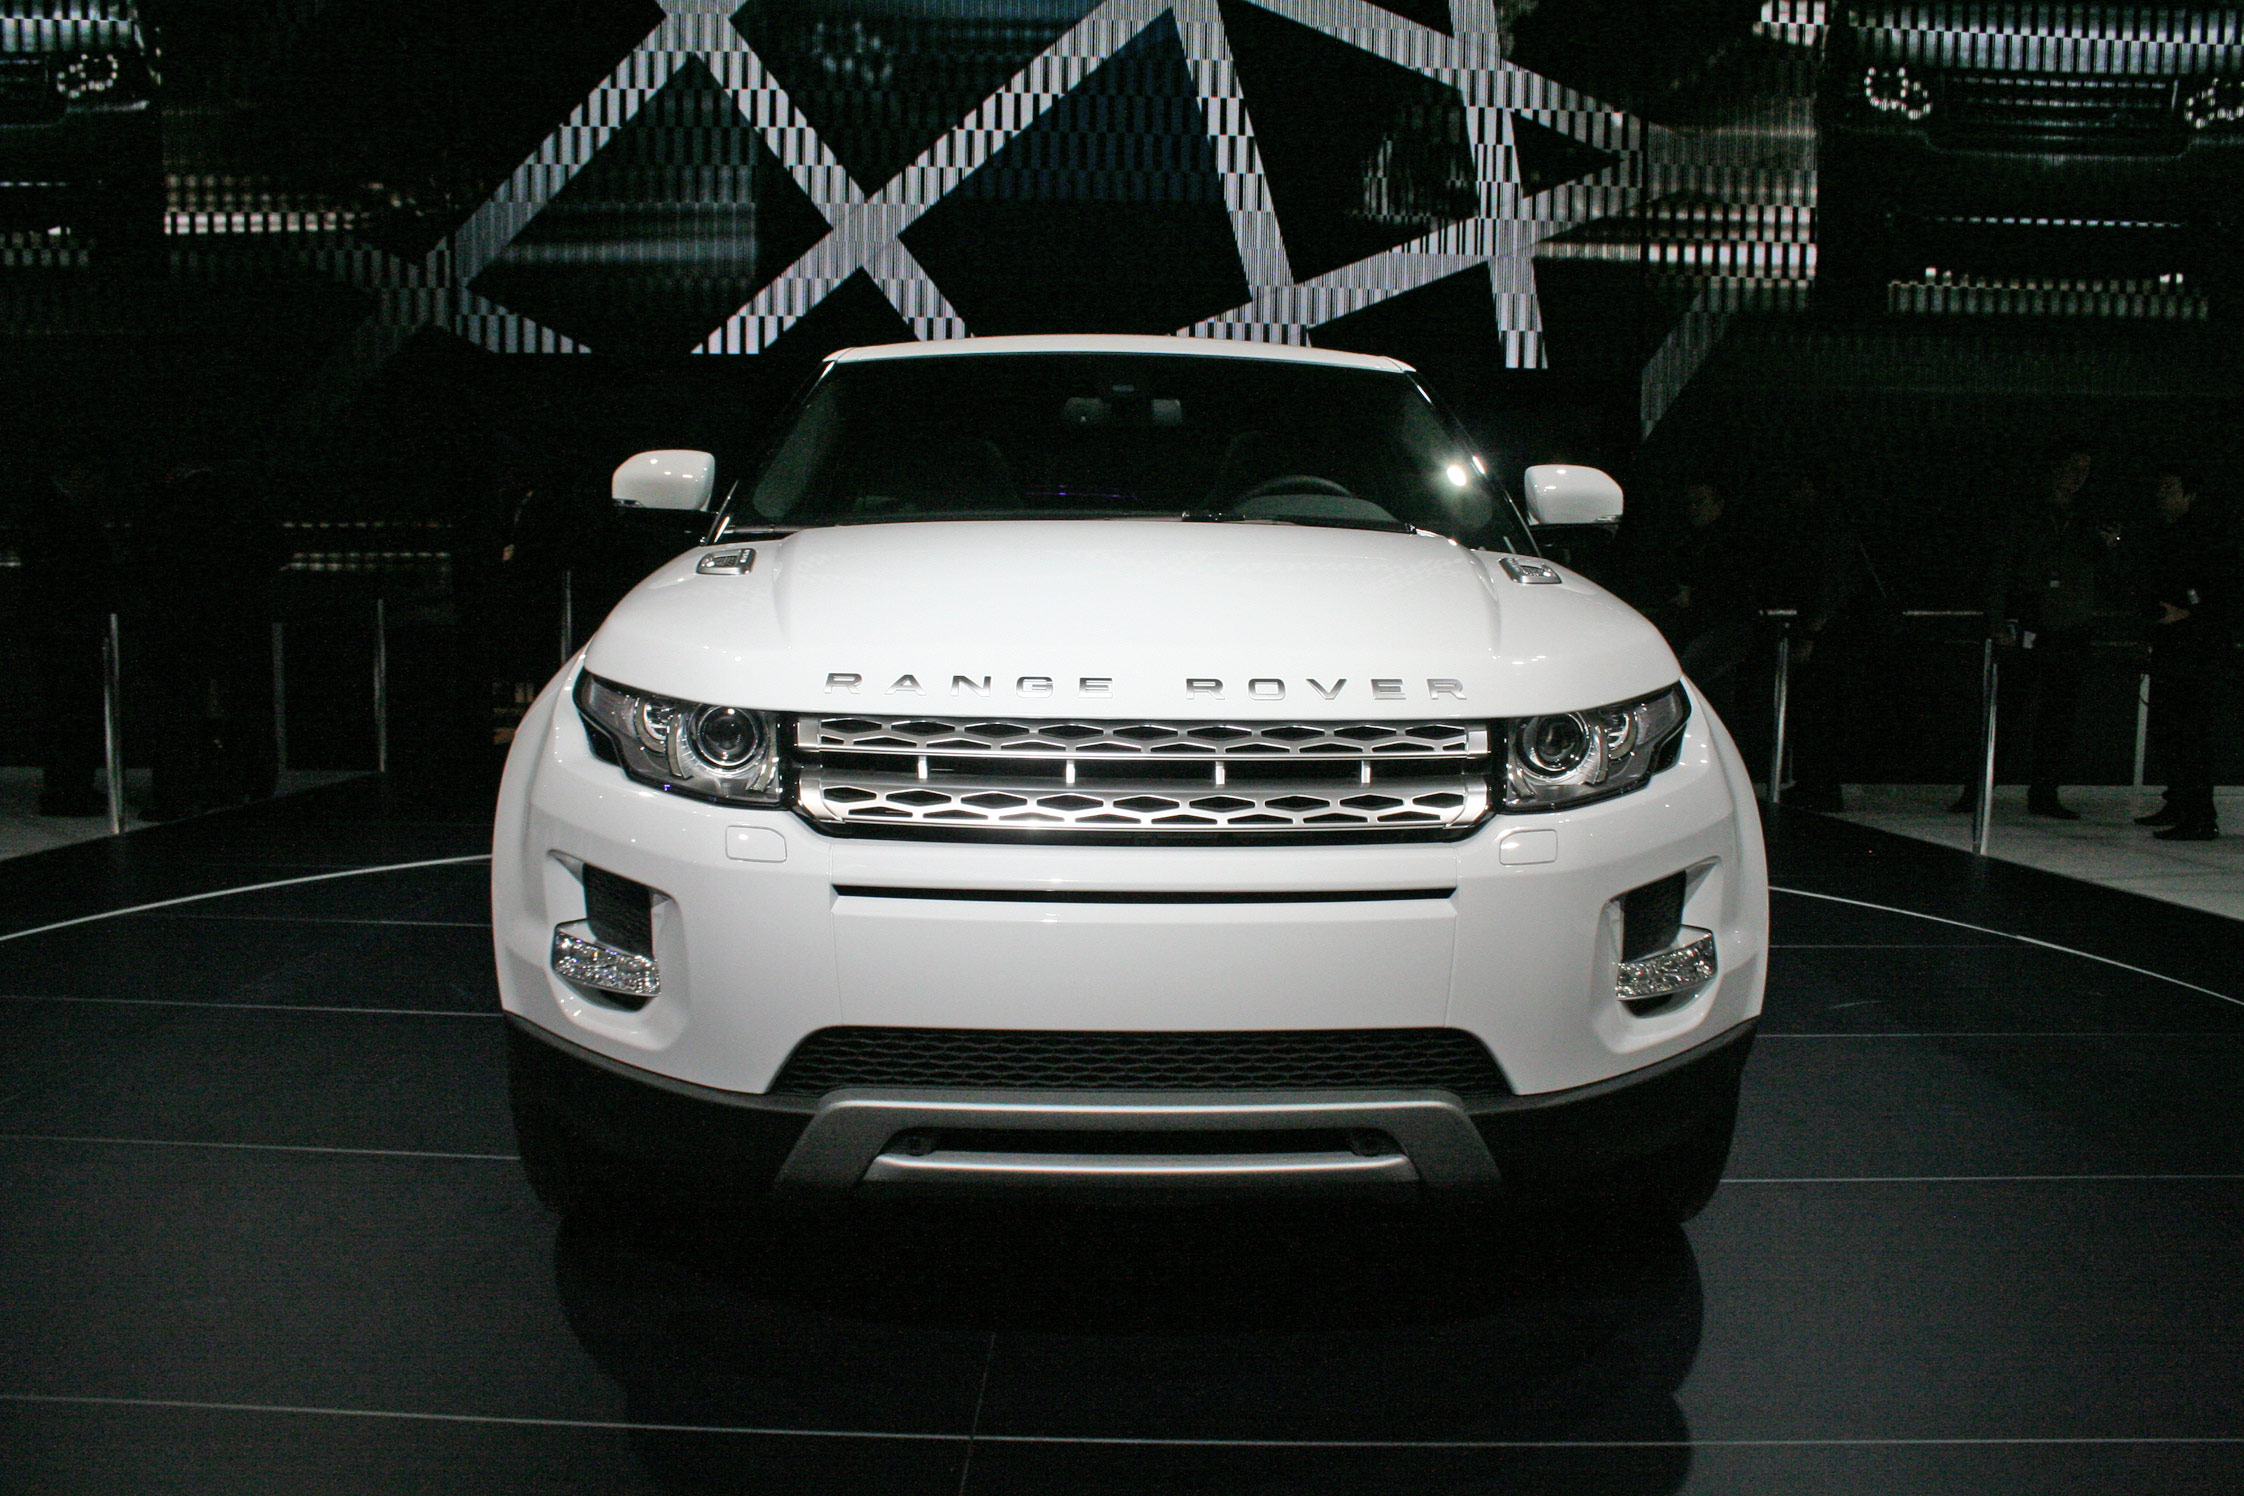 land rover range rover evoque mondial automobile de paris 2010. Black Bedroom Furniture Sets. Home Design Ideas